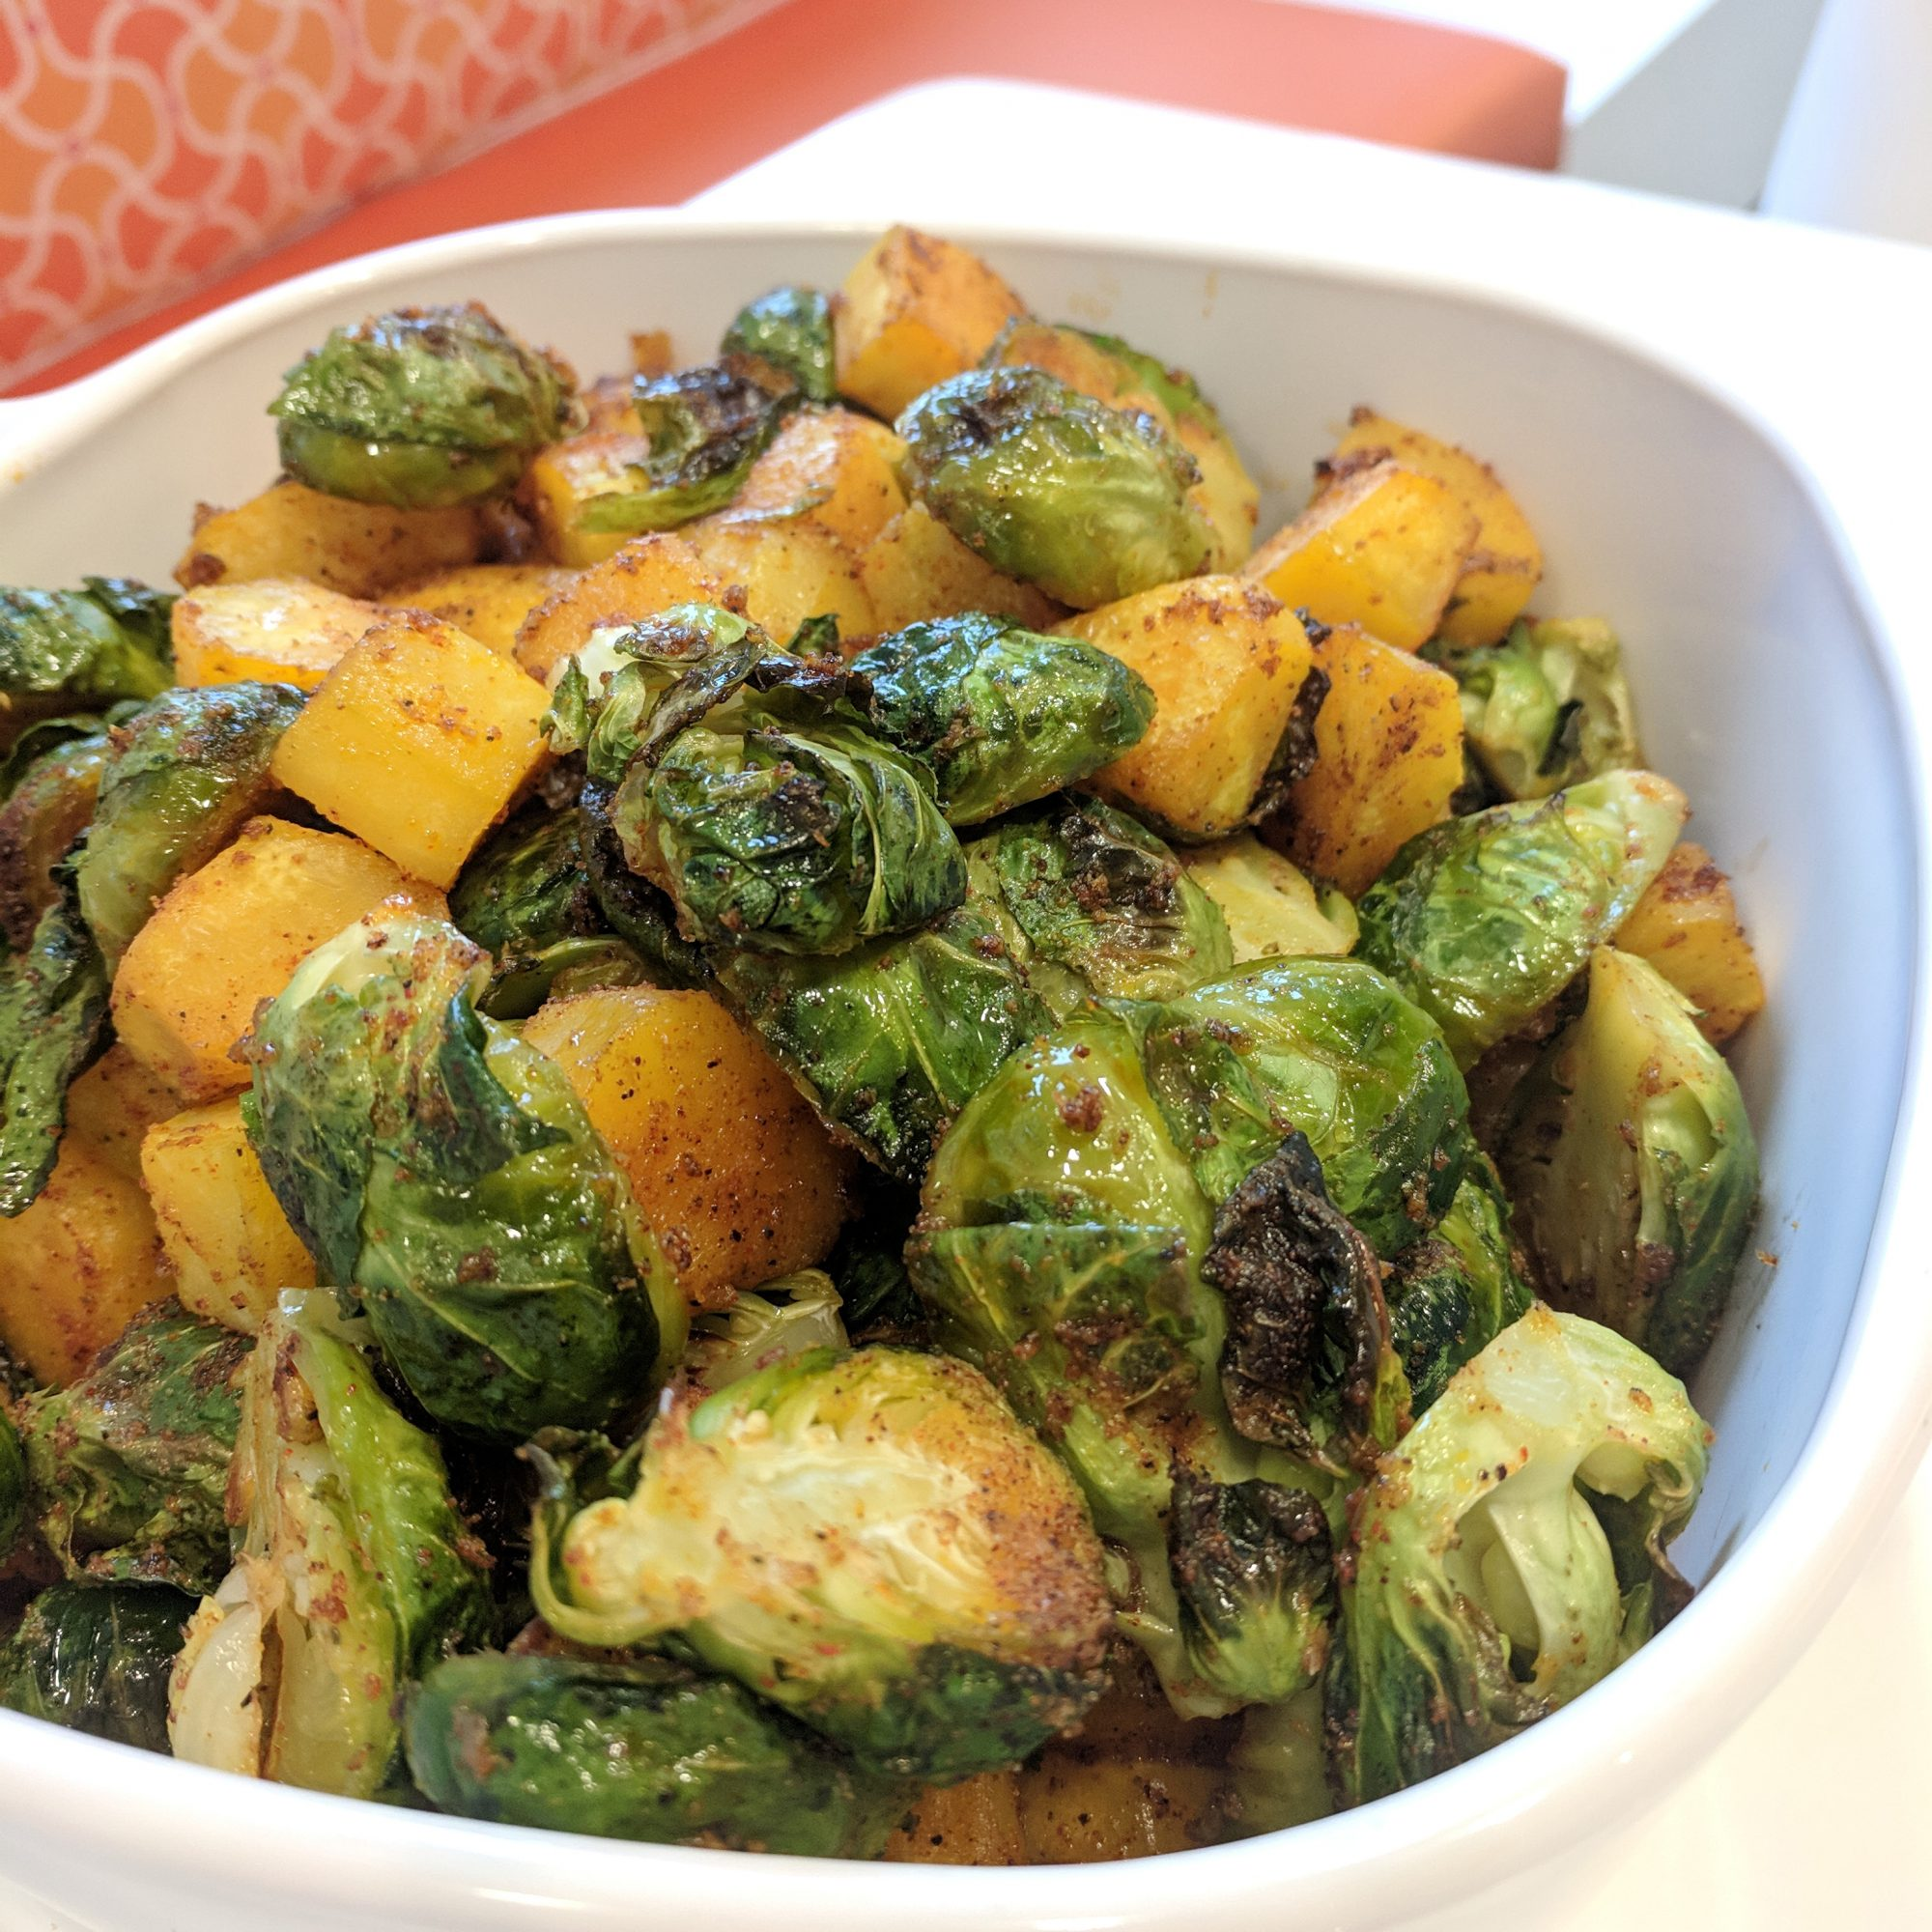 Roasted brussels sprouts and squash in a white bowl